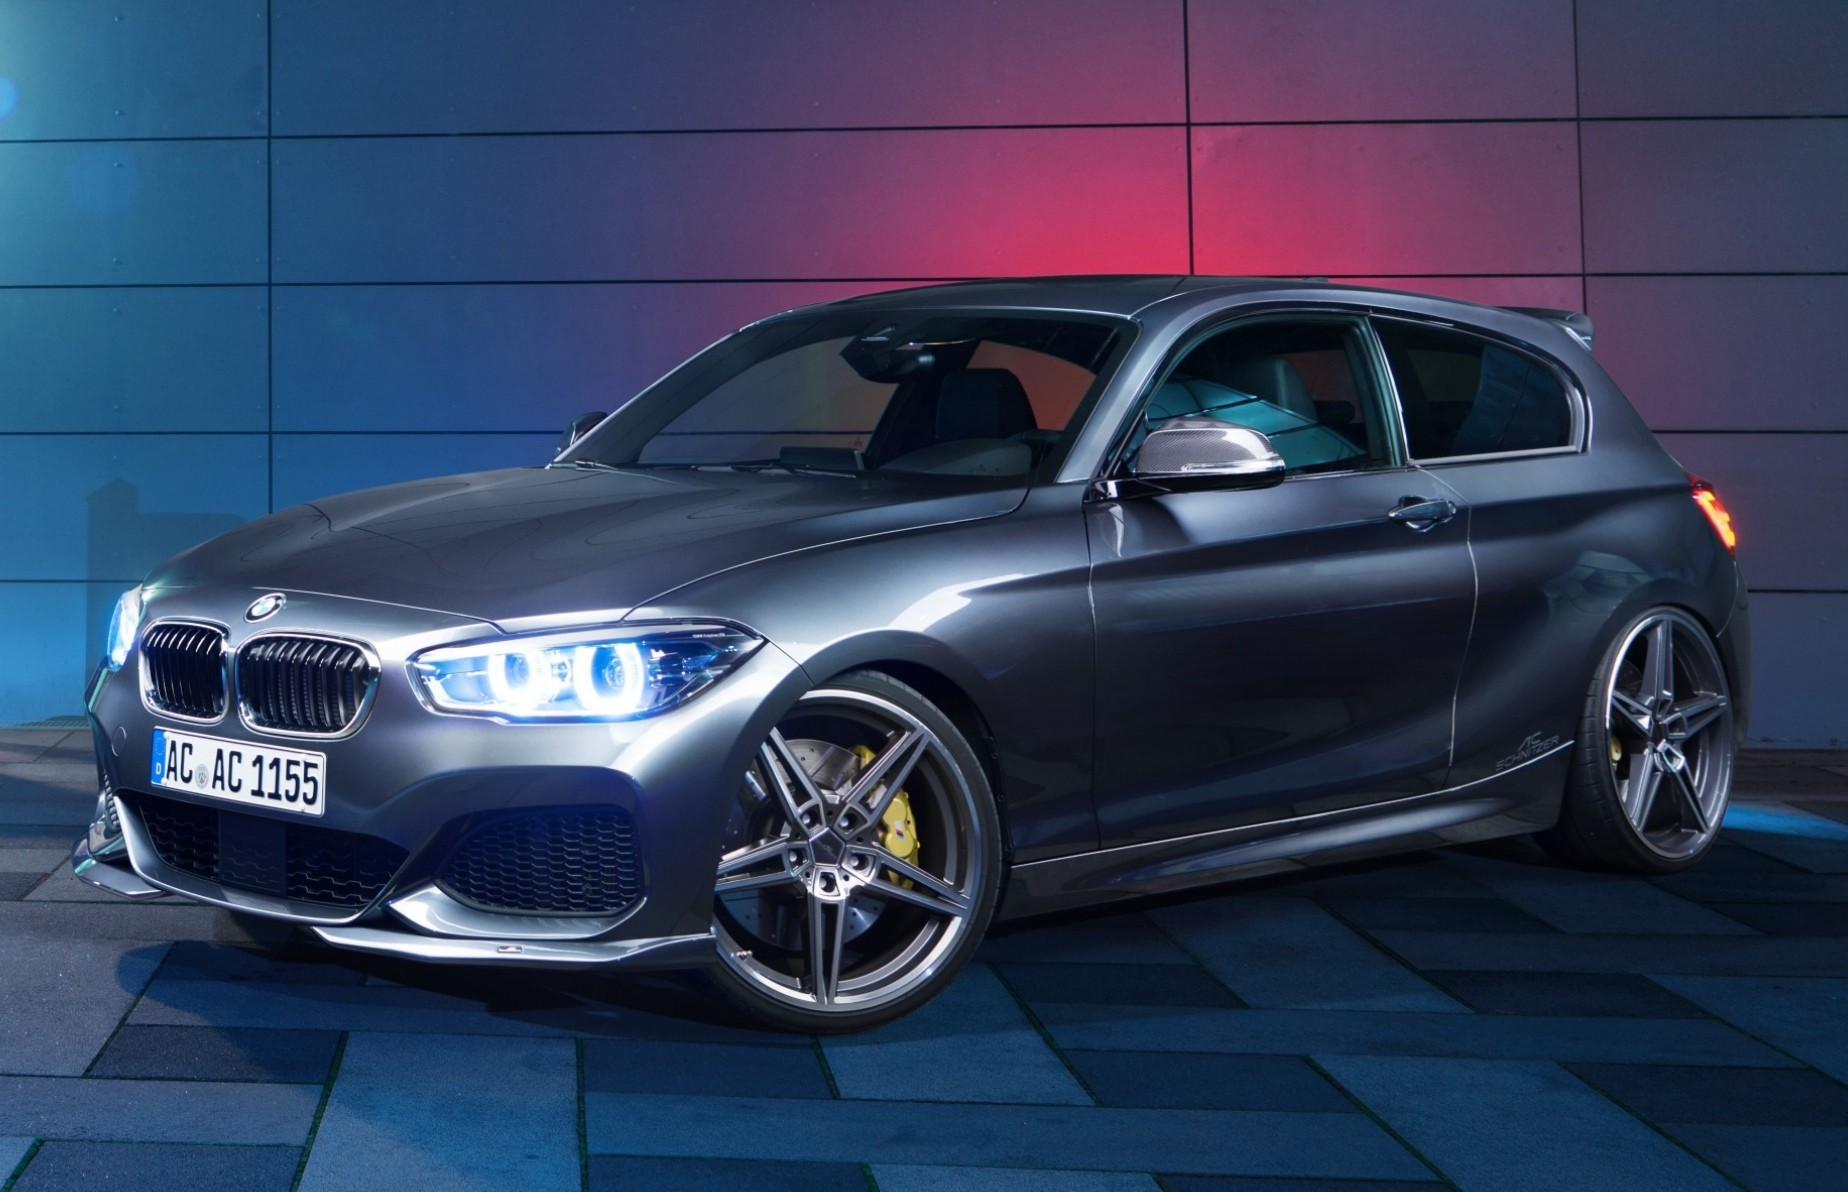 ac schnitzer shows bmw 150d, a 1 series stuffed with tri-turbo